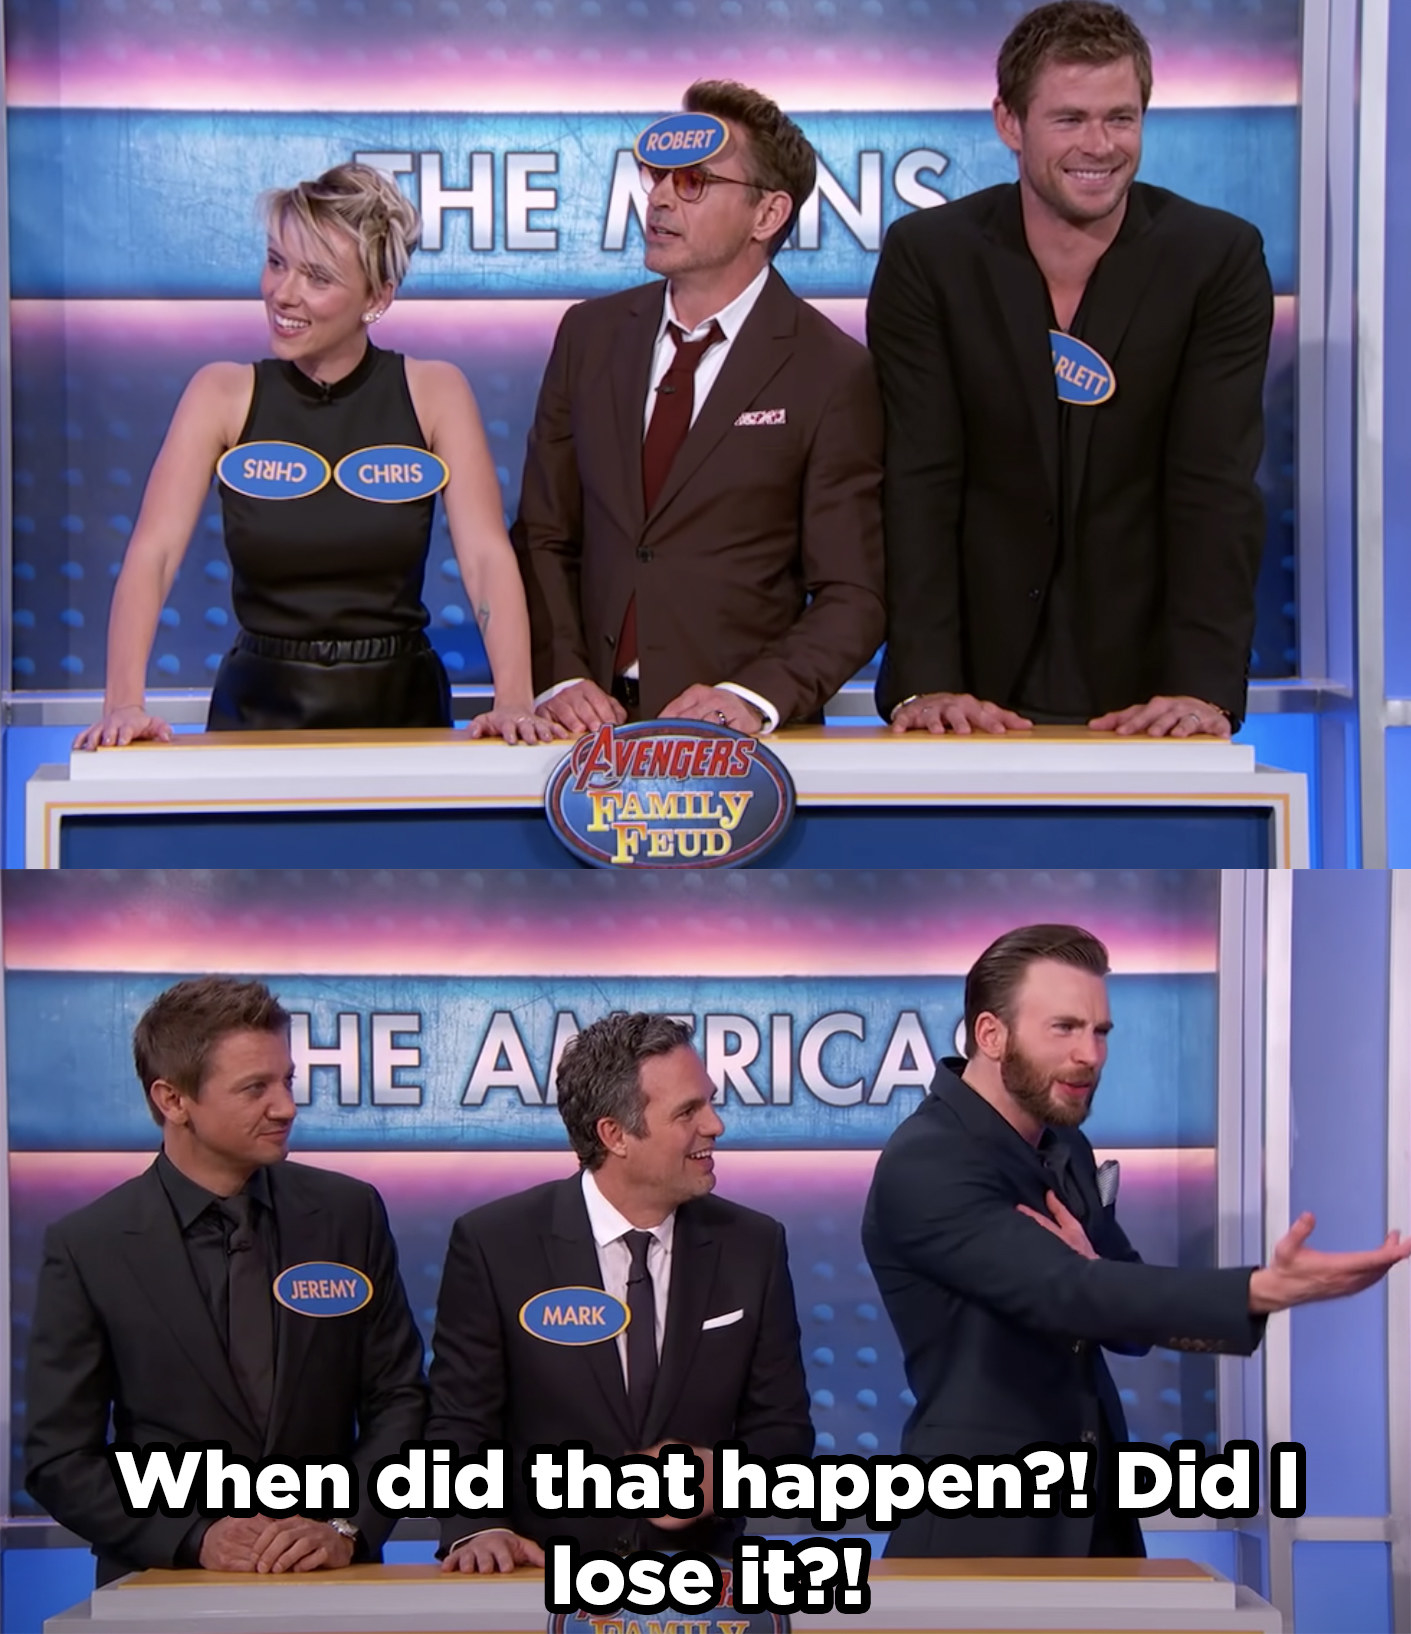 Scarlett wearing two name tags that say Chris, while Chris Evans realizes his name tag is missing.